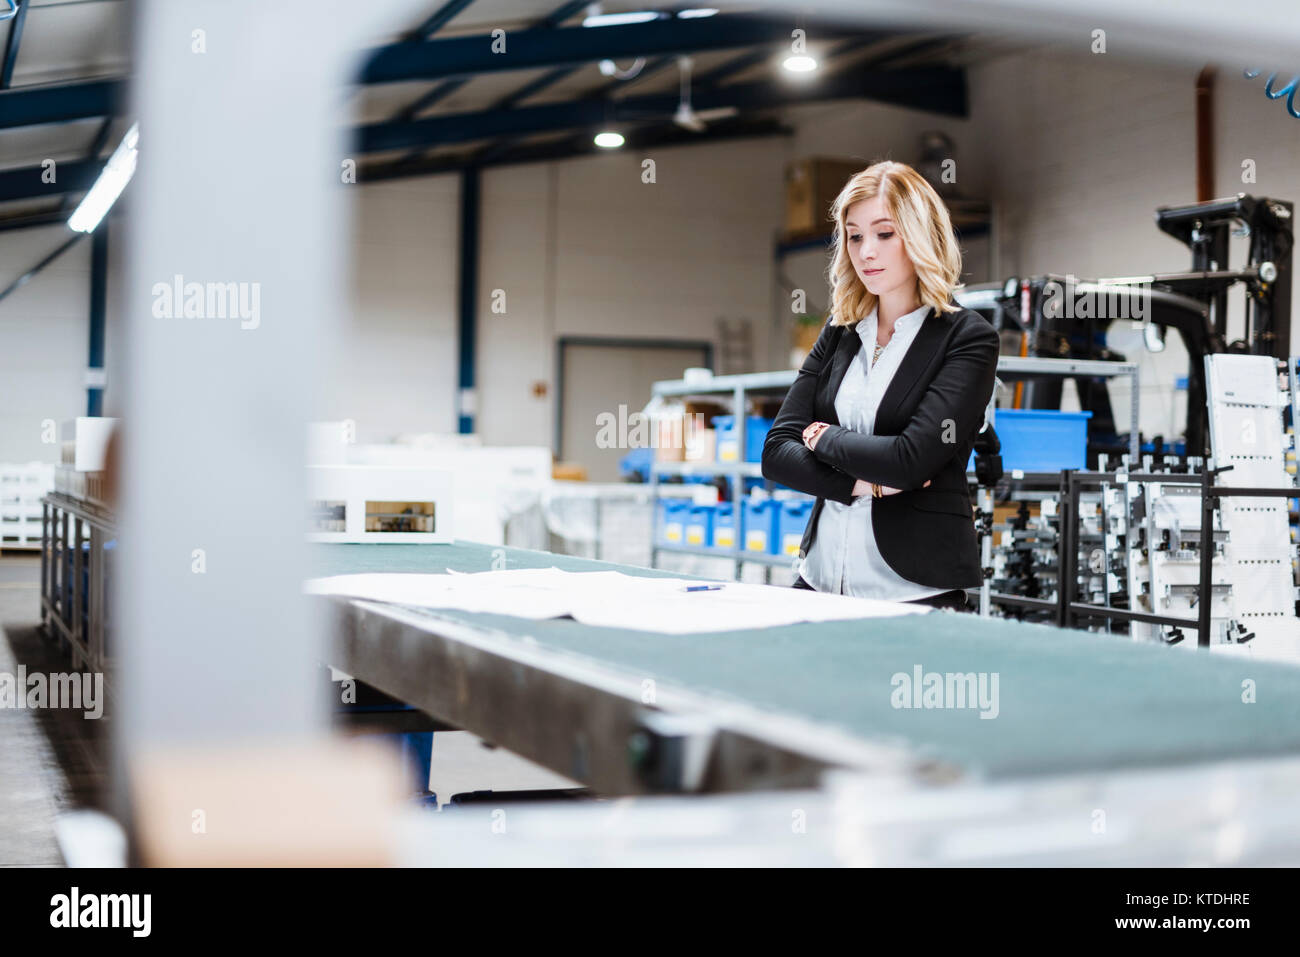 Blond businesswoman standing on shop floor, looking at plans - Stock Image